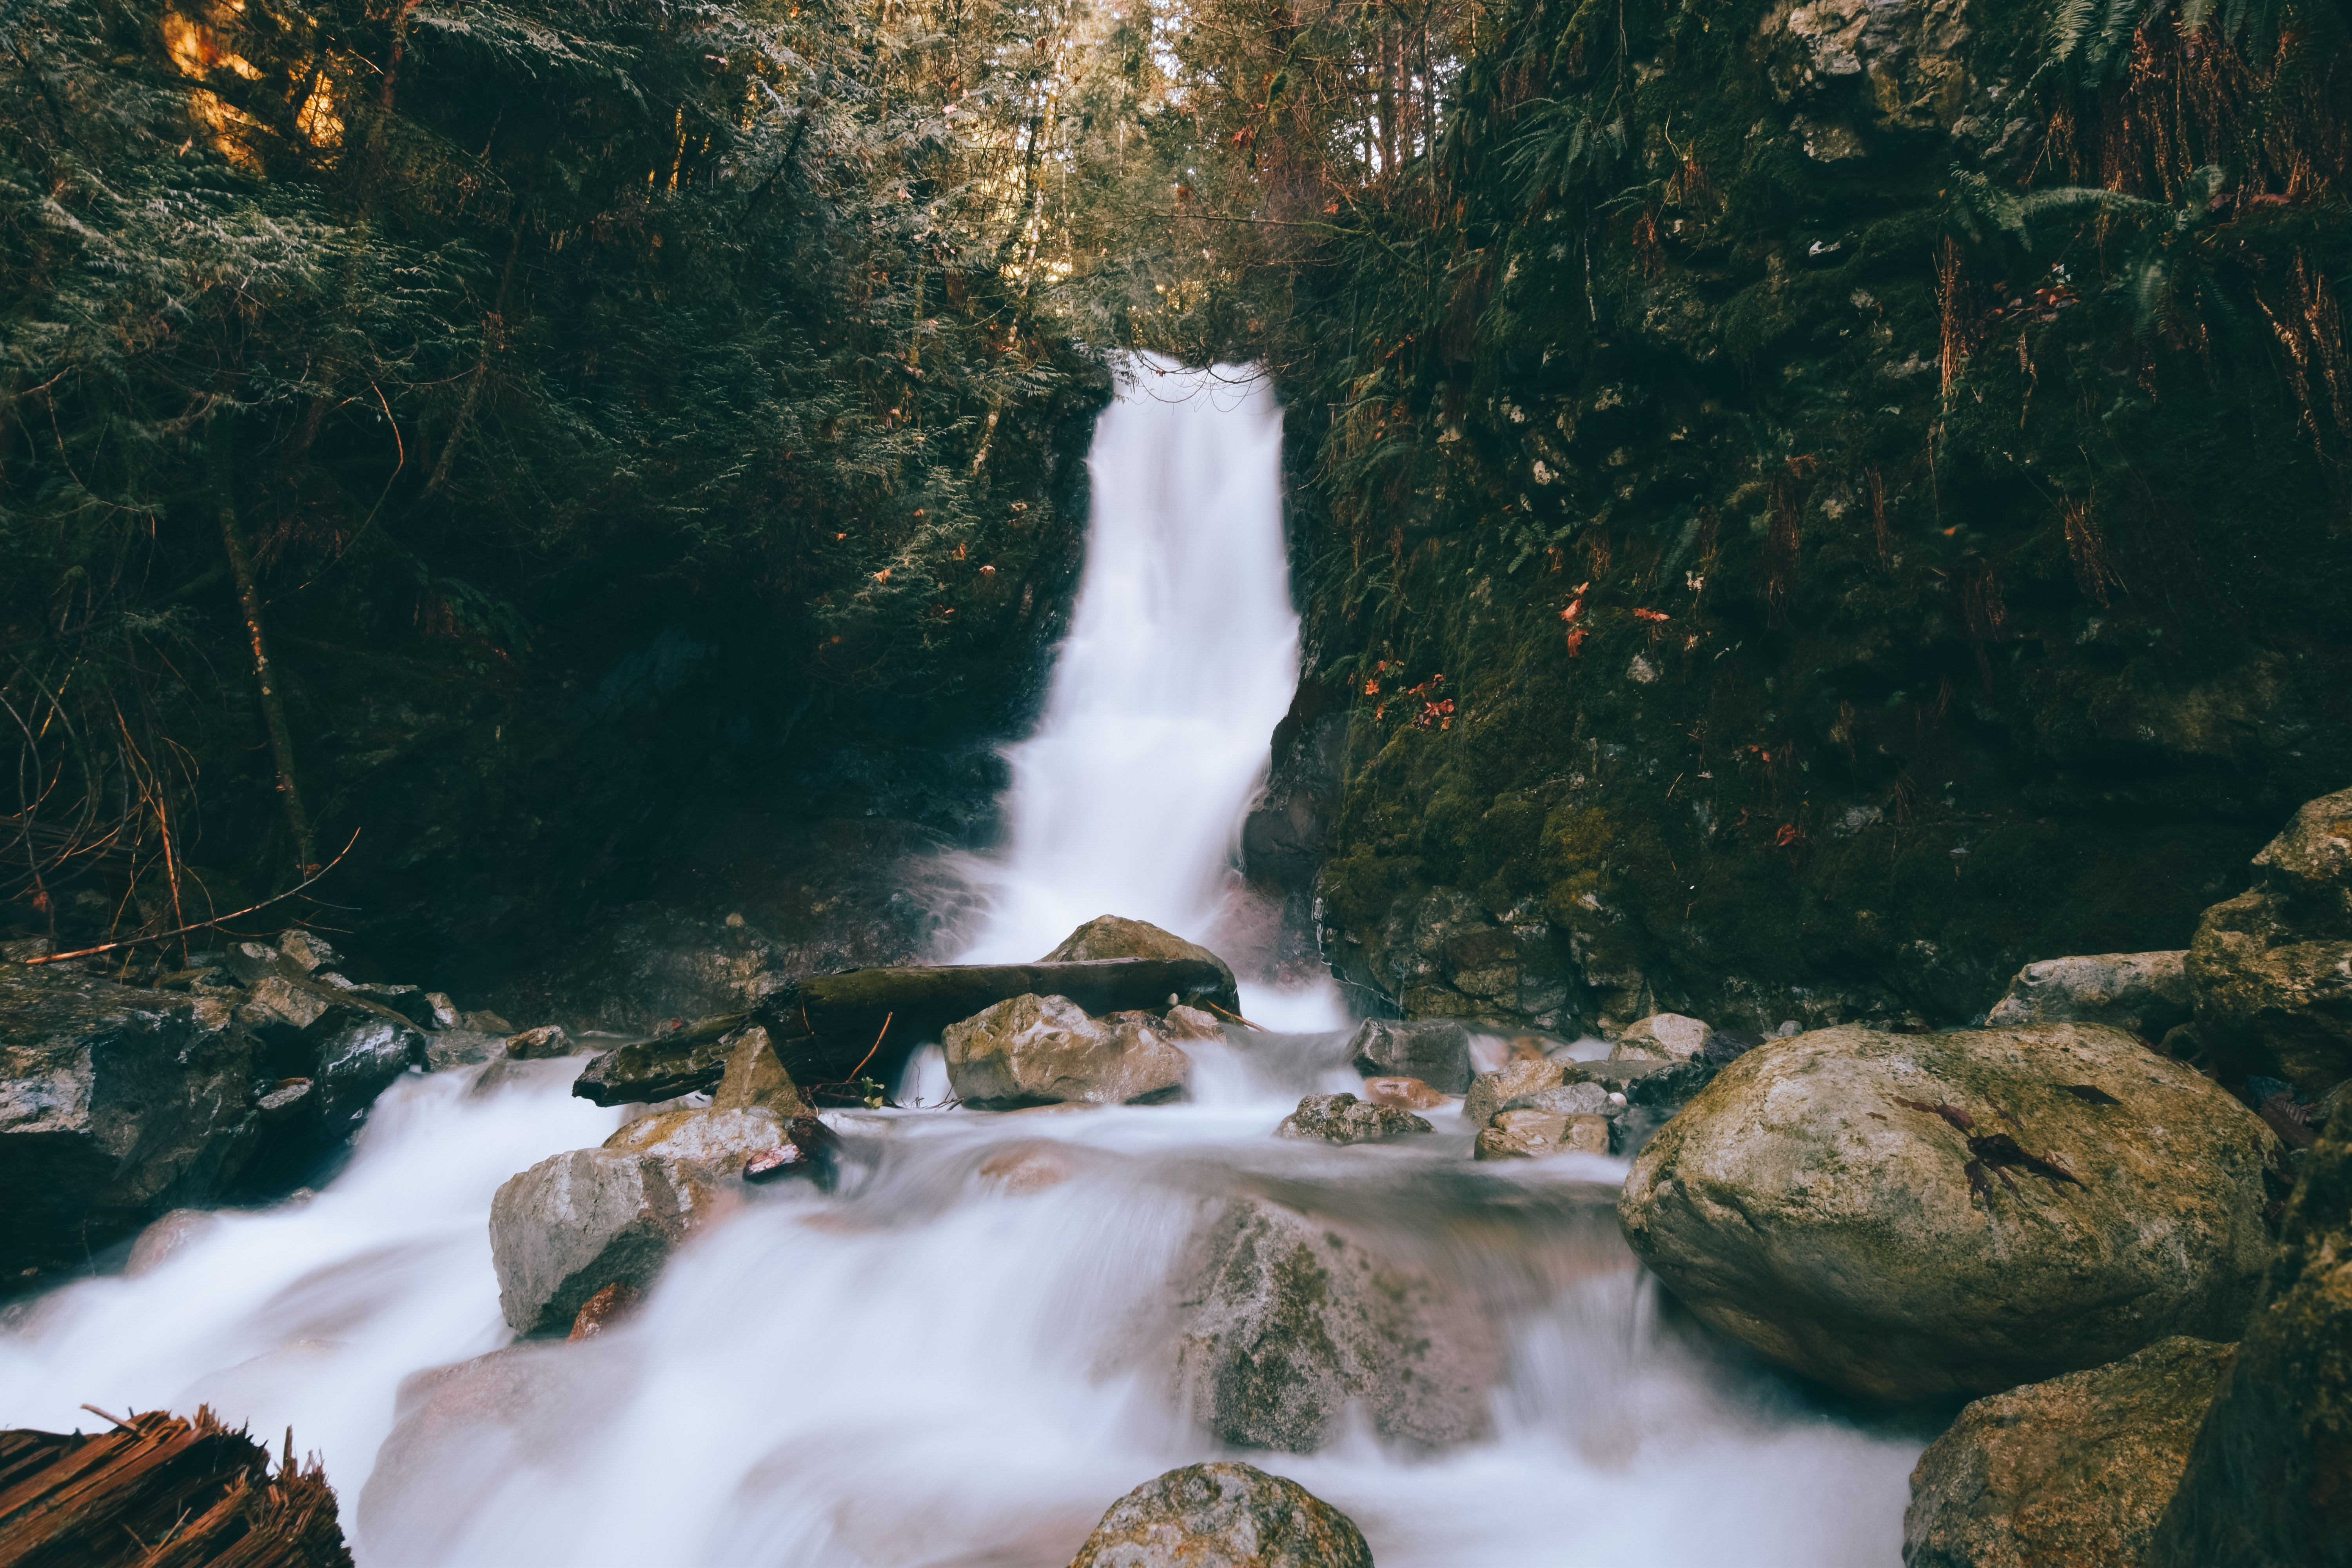 time-lapse photography of waterfalls and stones during daytime